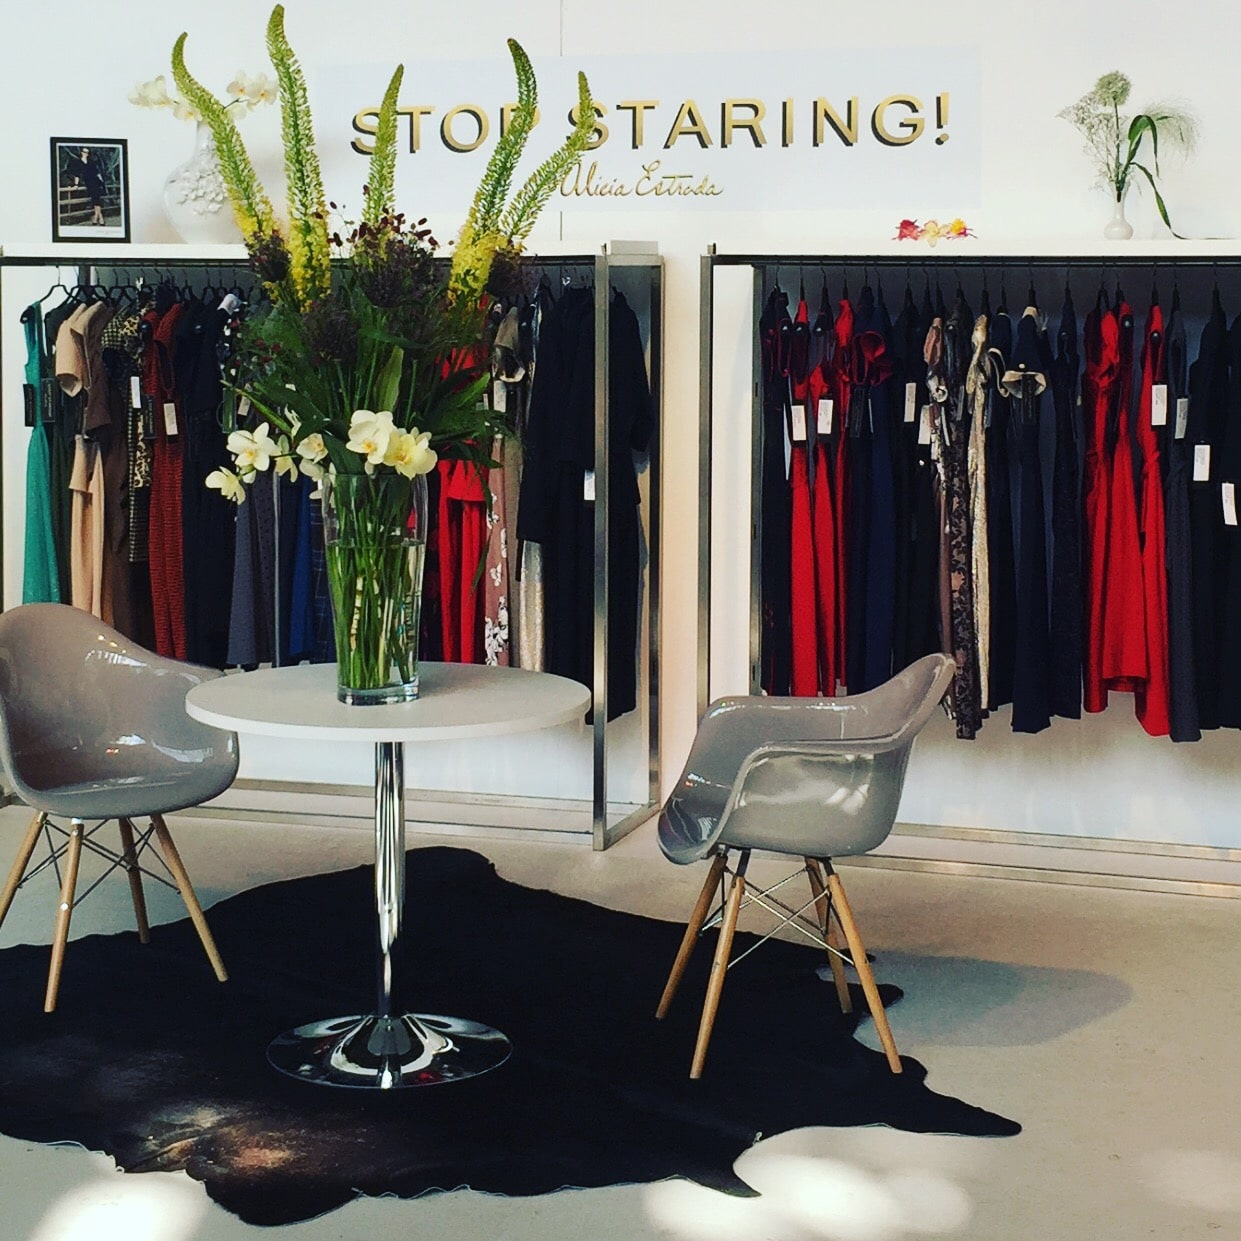 Visit the Stop Staring Boutique Dublin